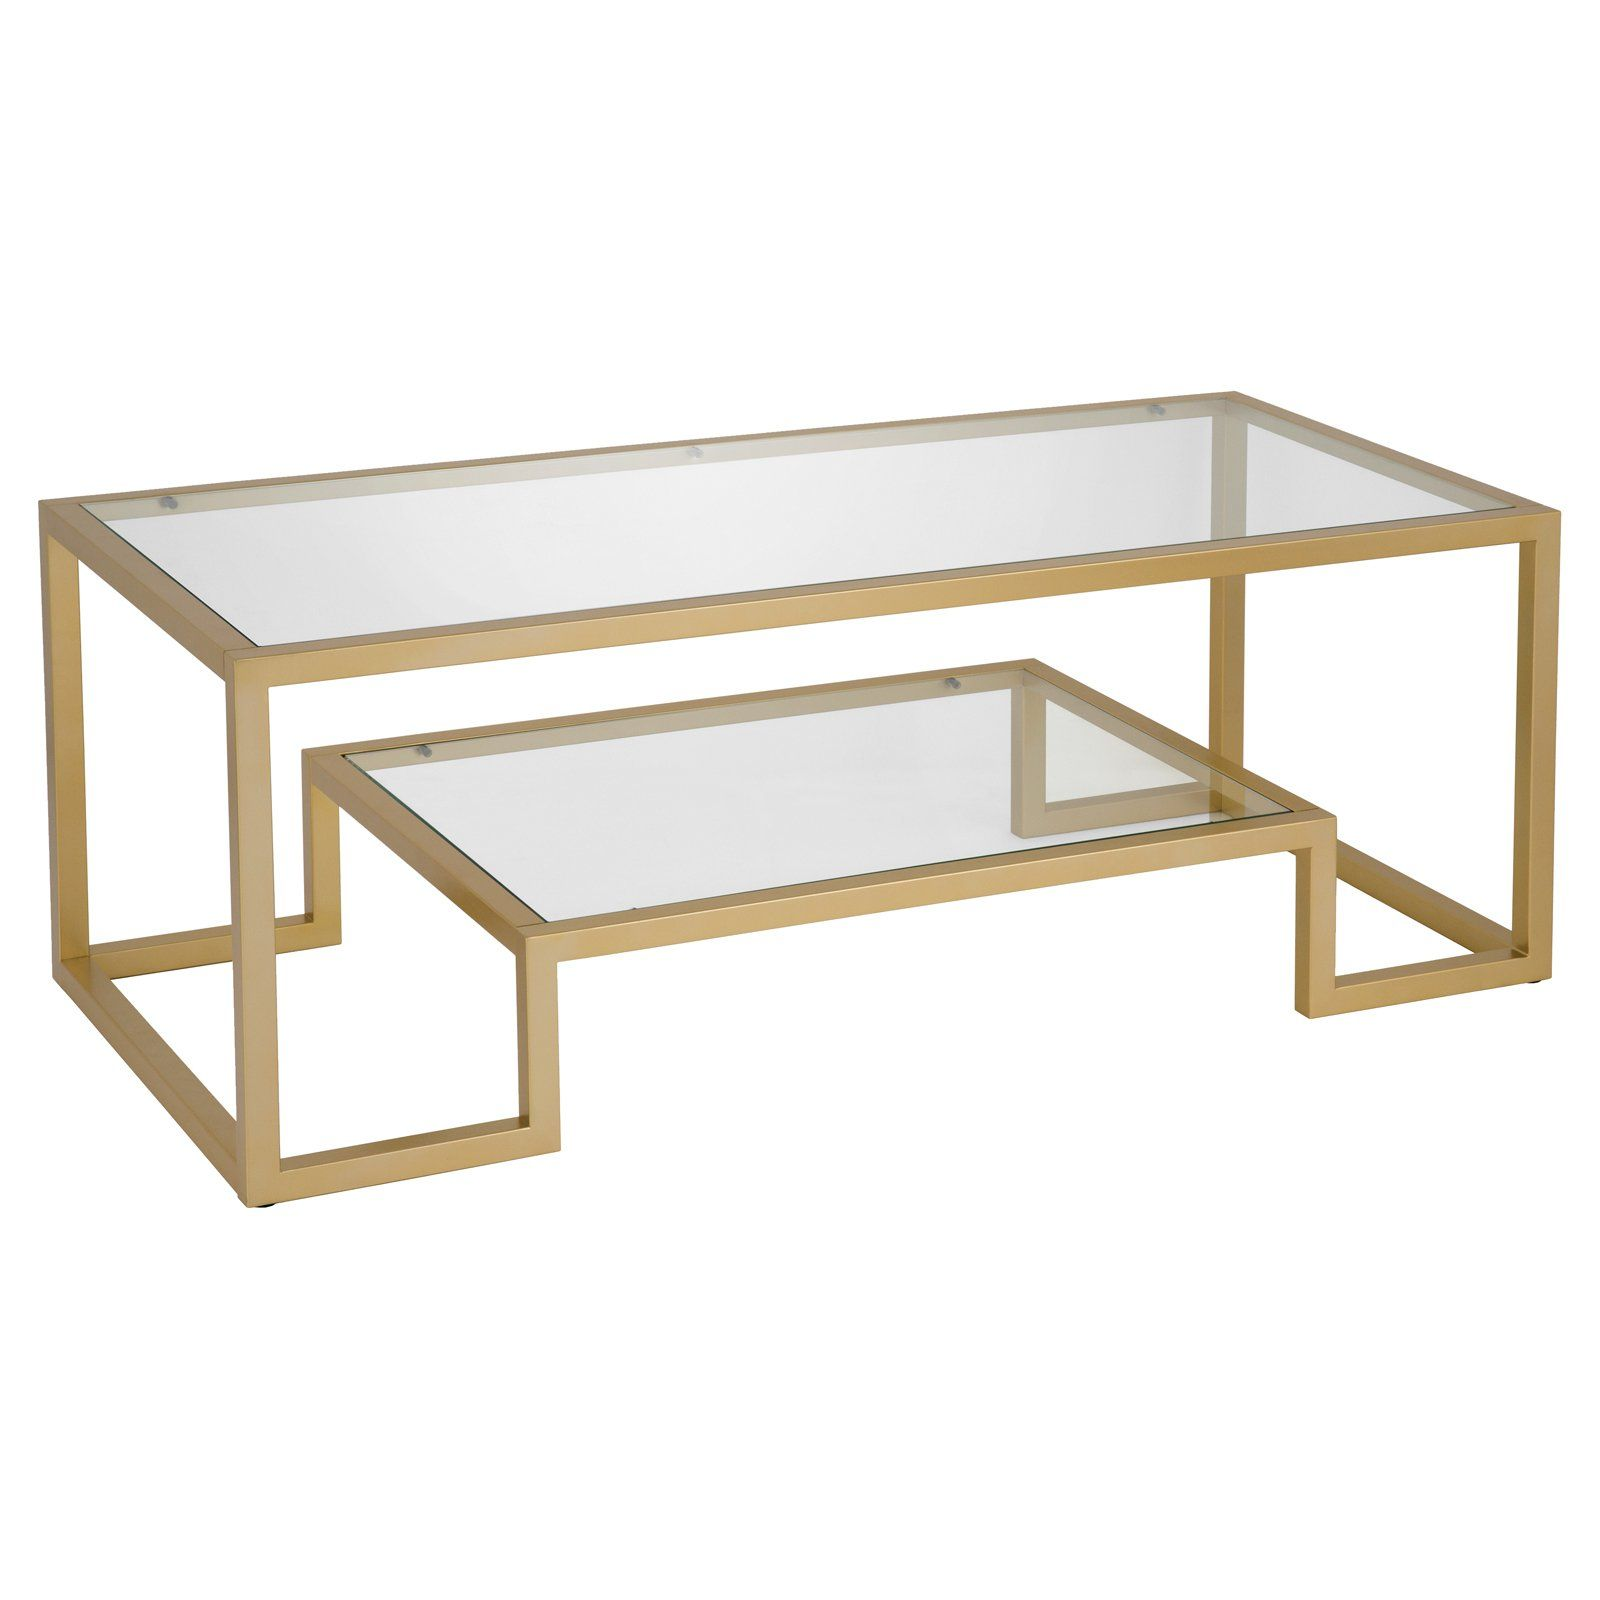 Hudson Canal Athena Coffee Table In 2020 Table Gold Kitchen Glass Panels